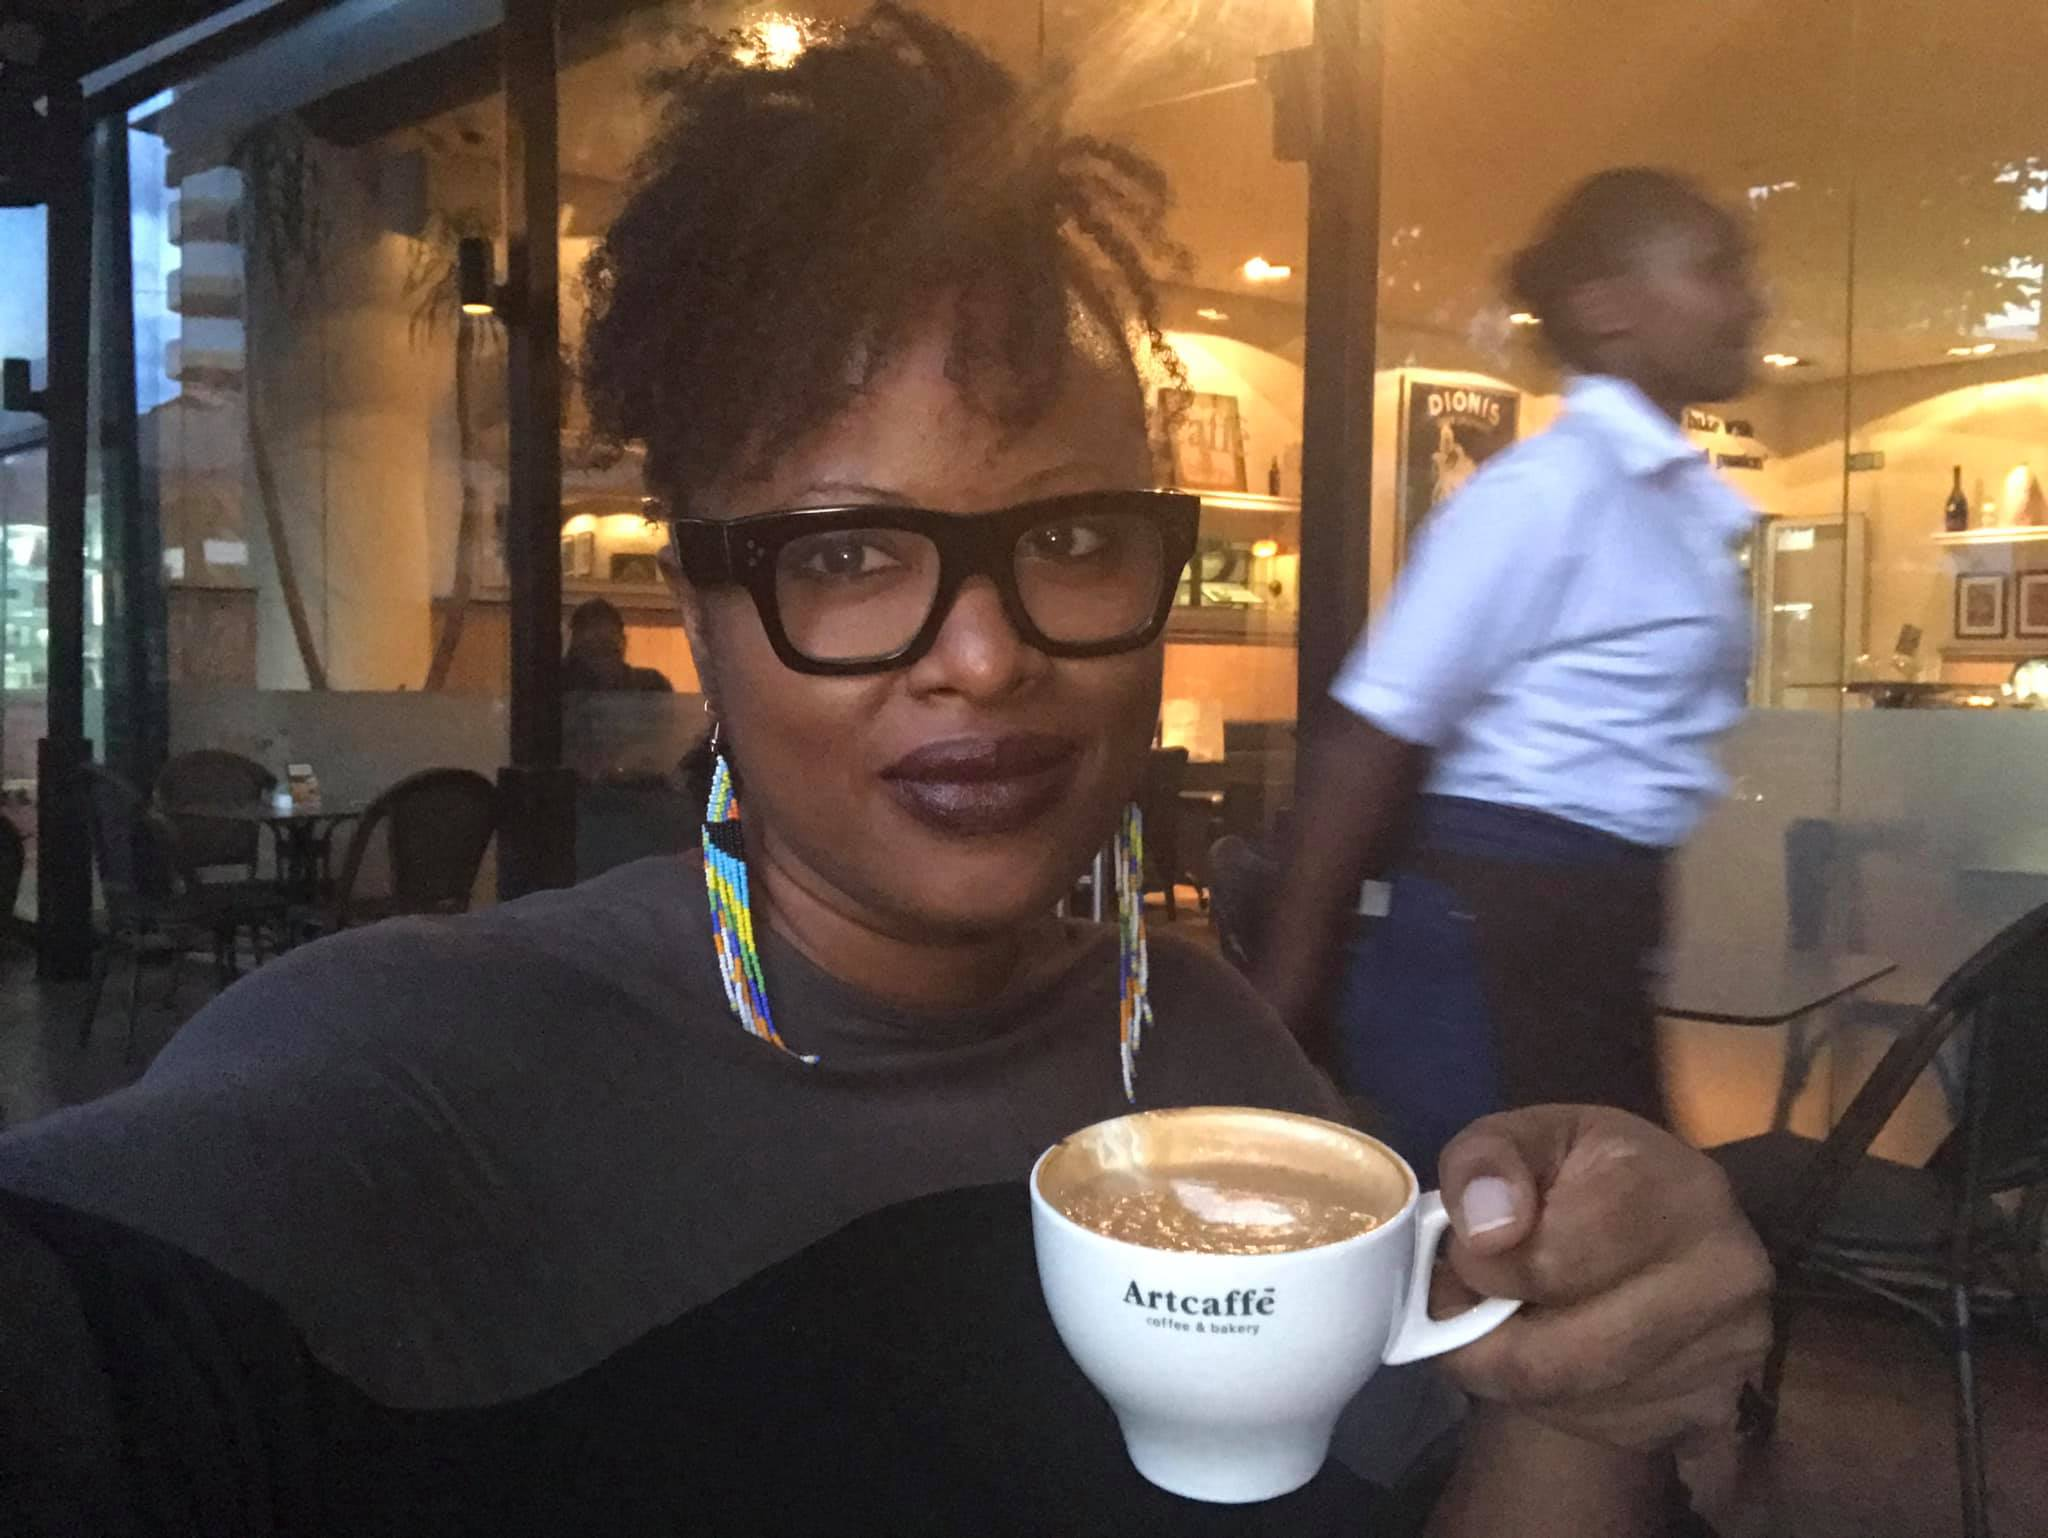 I went to the Artcaffe at The Oval in Westlands. I loved the space. Their cuppa was also lush.